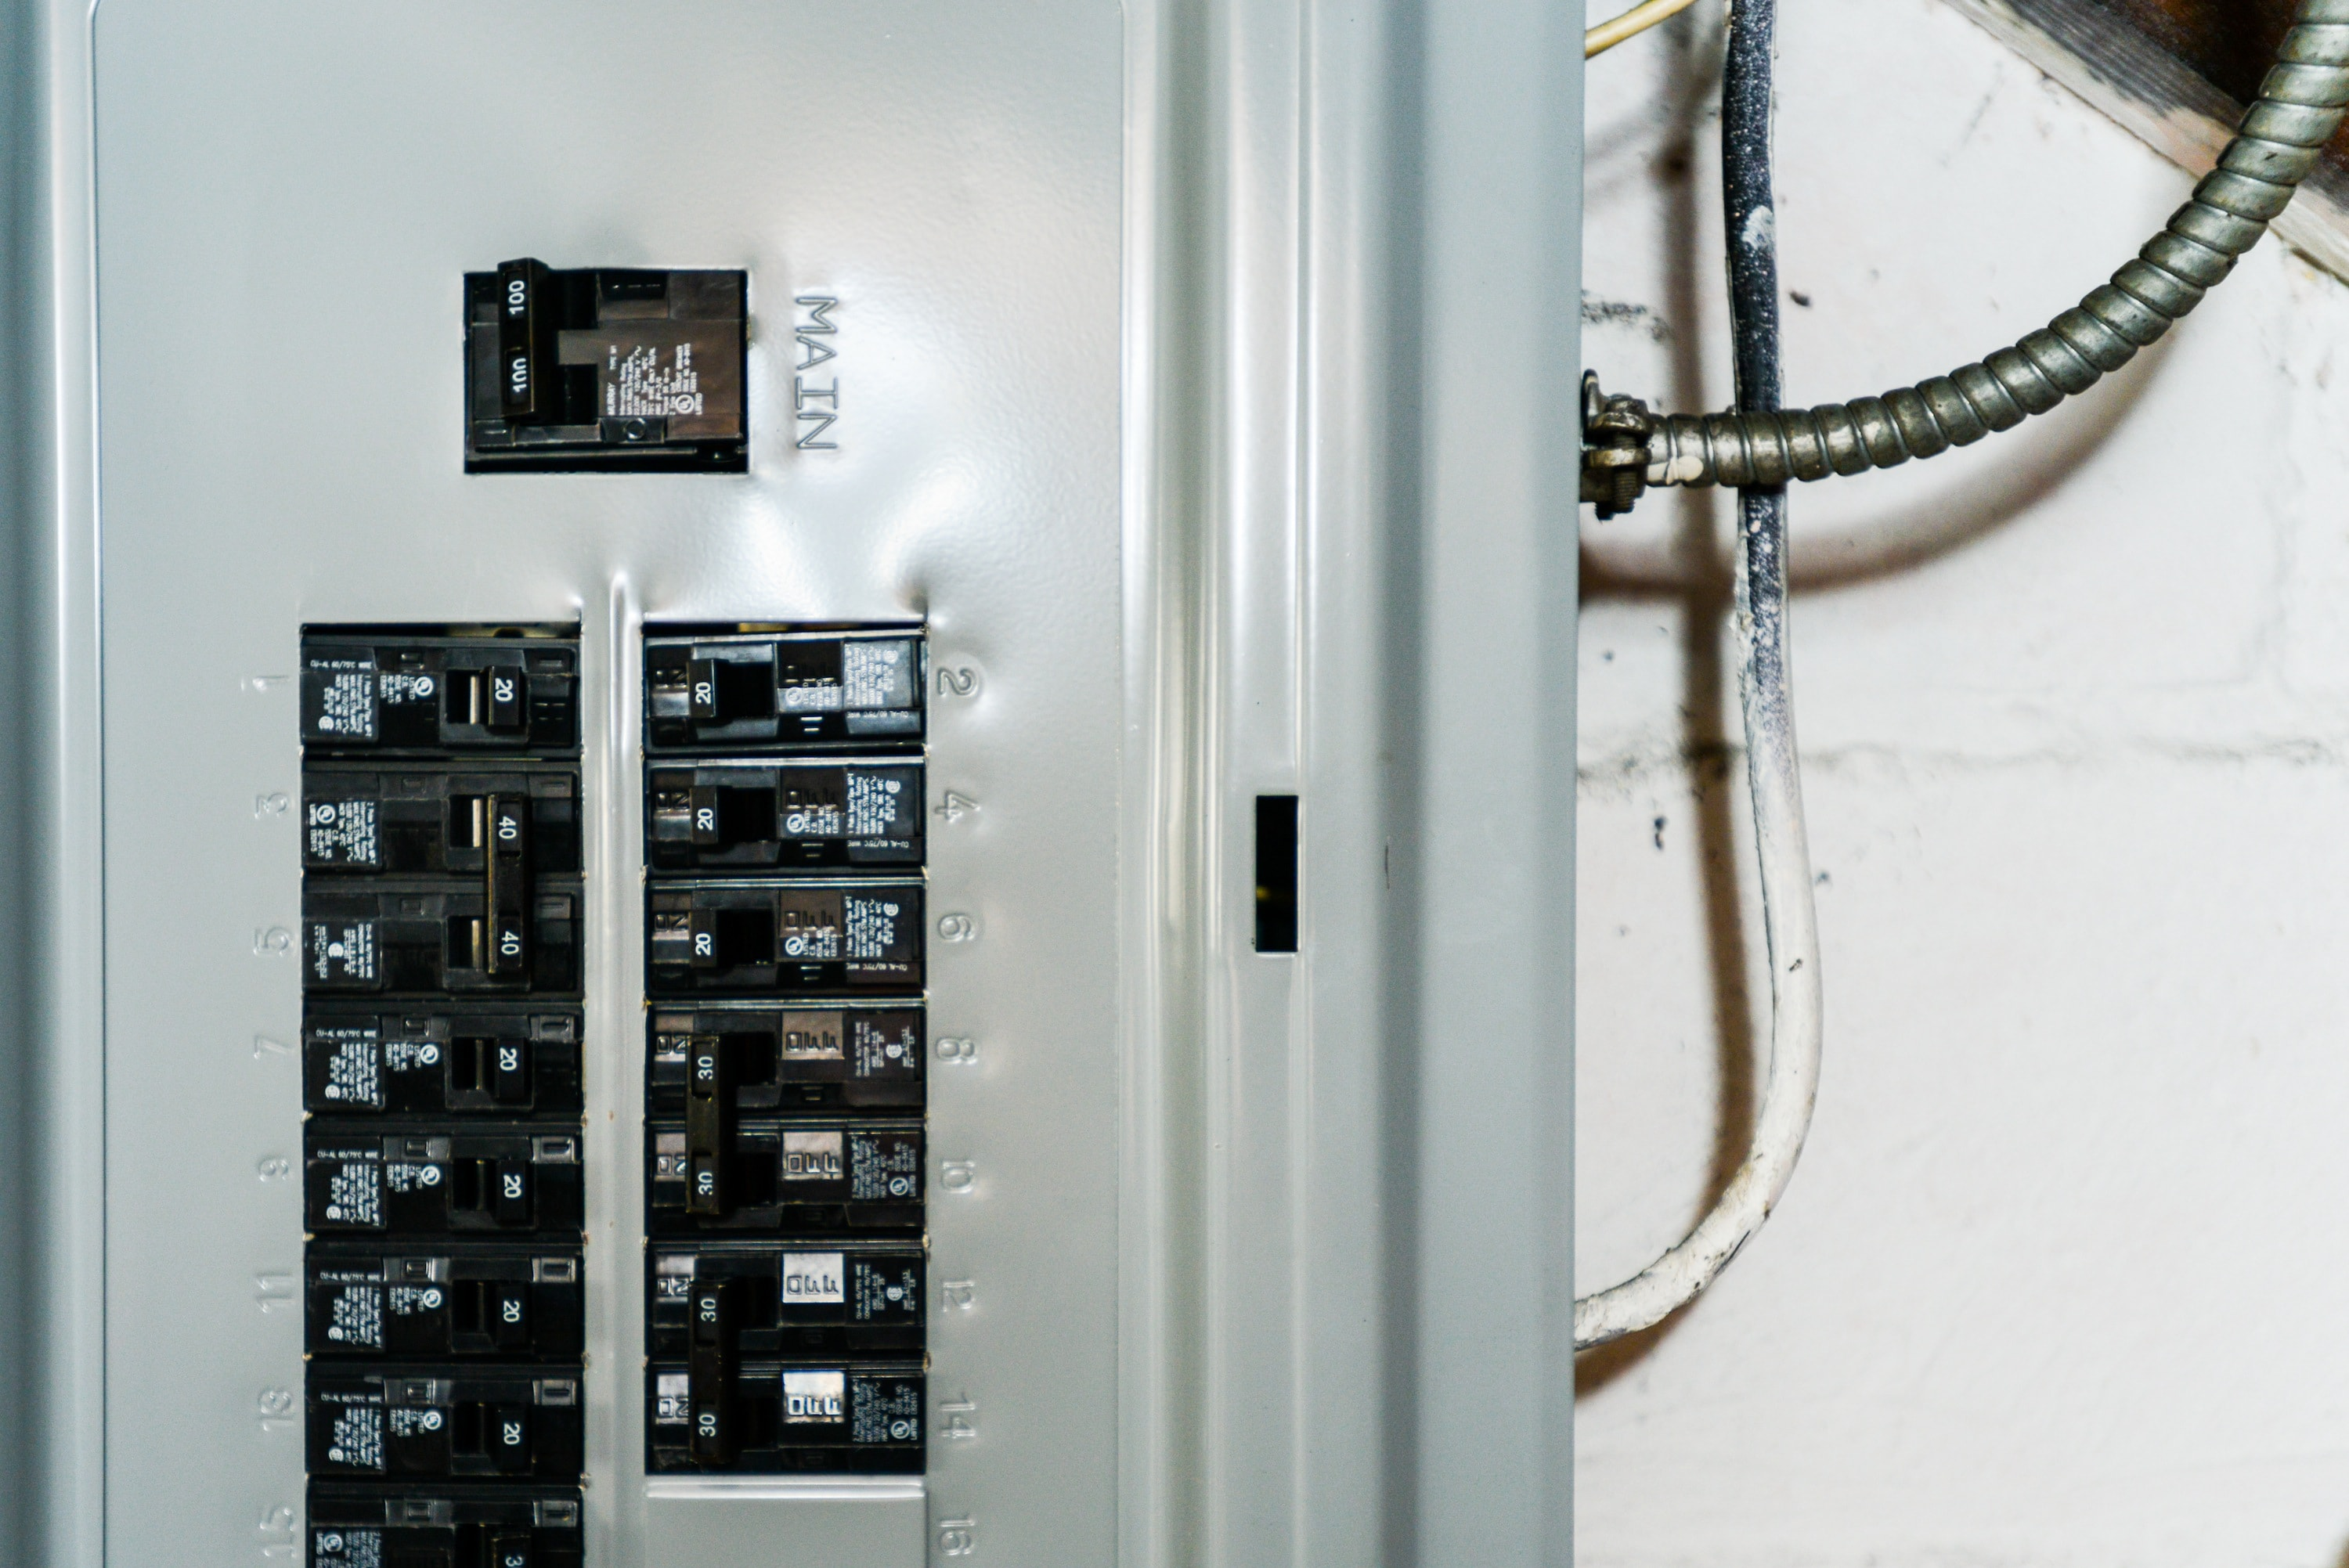 Terrific How Much Does It Cost To Rewire A House Angies List Wiring Cloud Overrenstrafr09Org